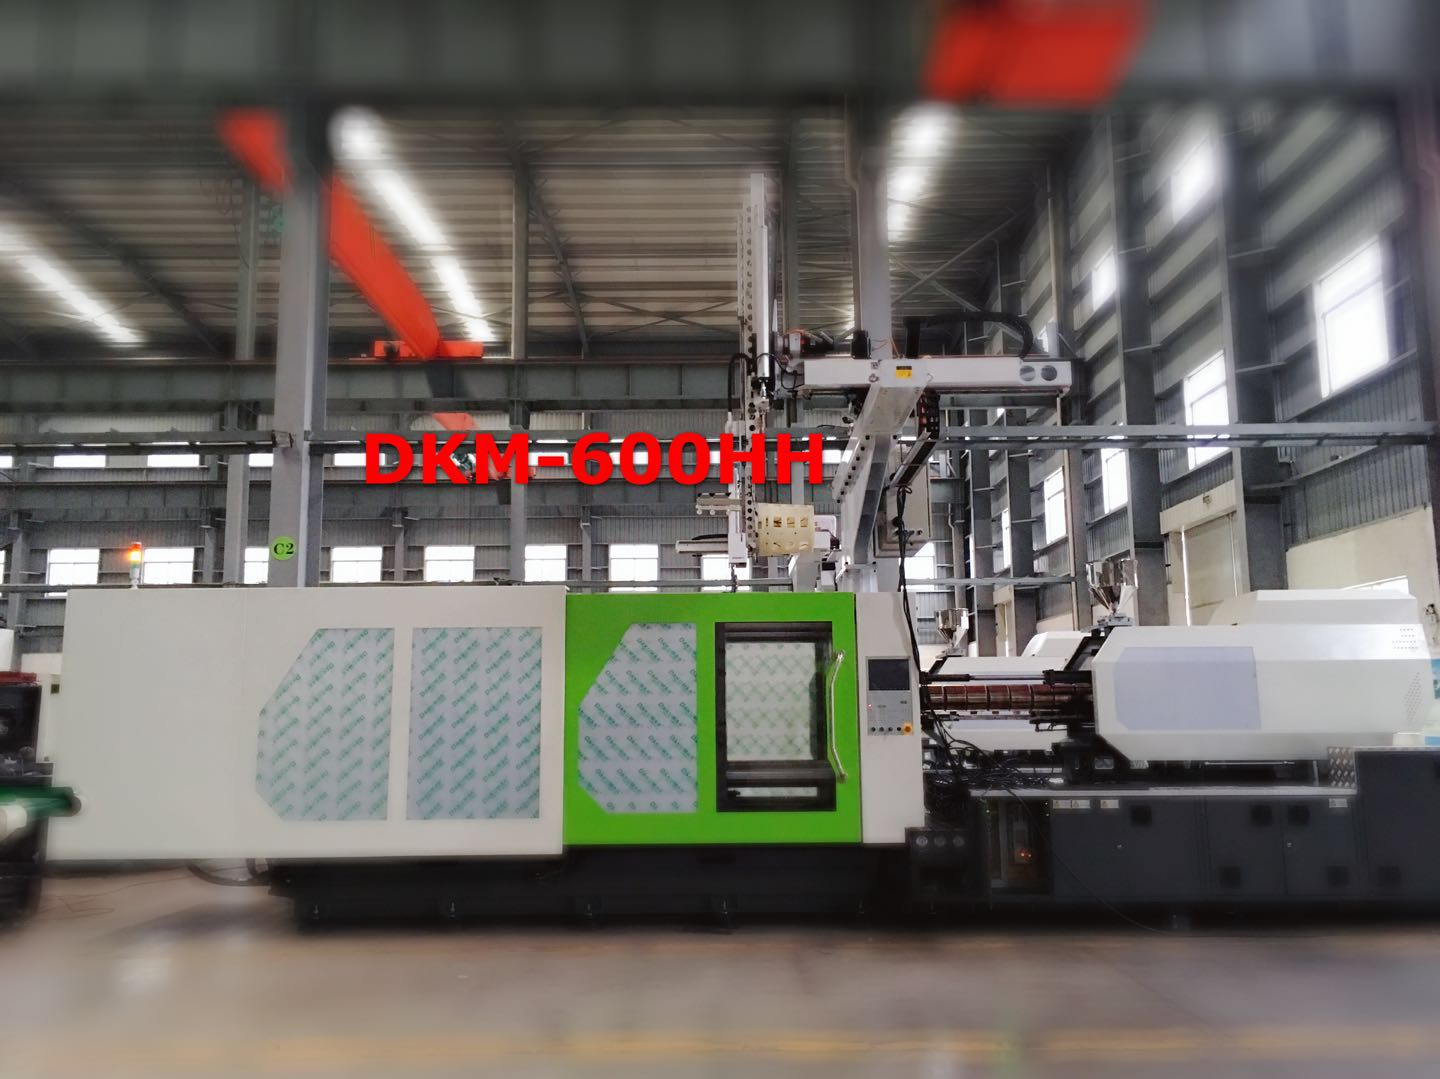 DKM-600HH High speed injection machine